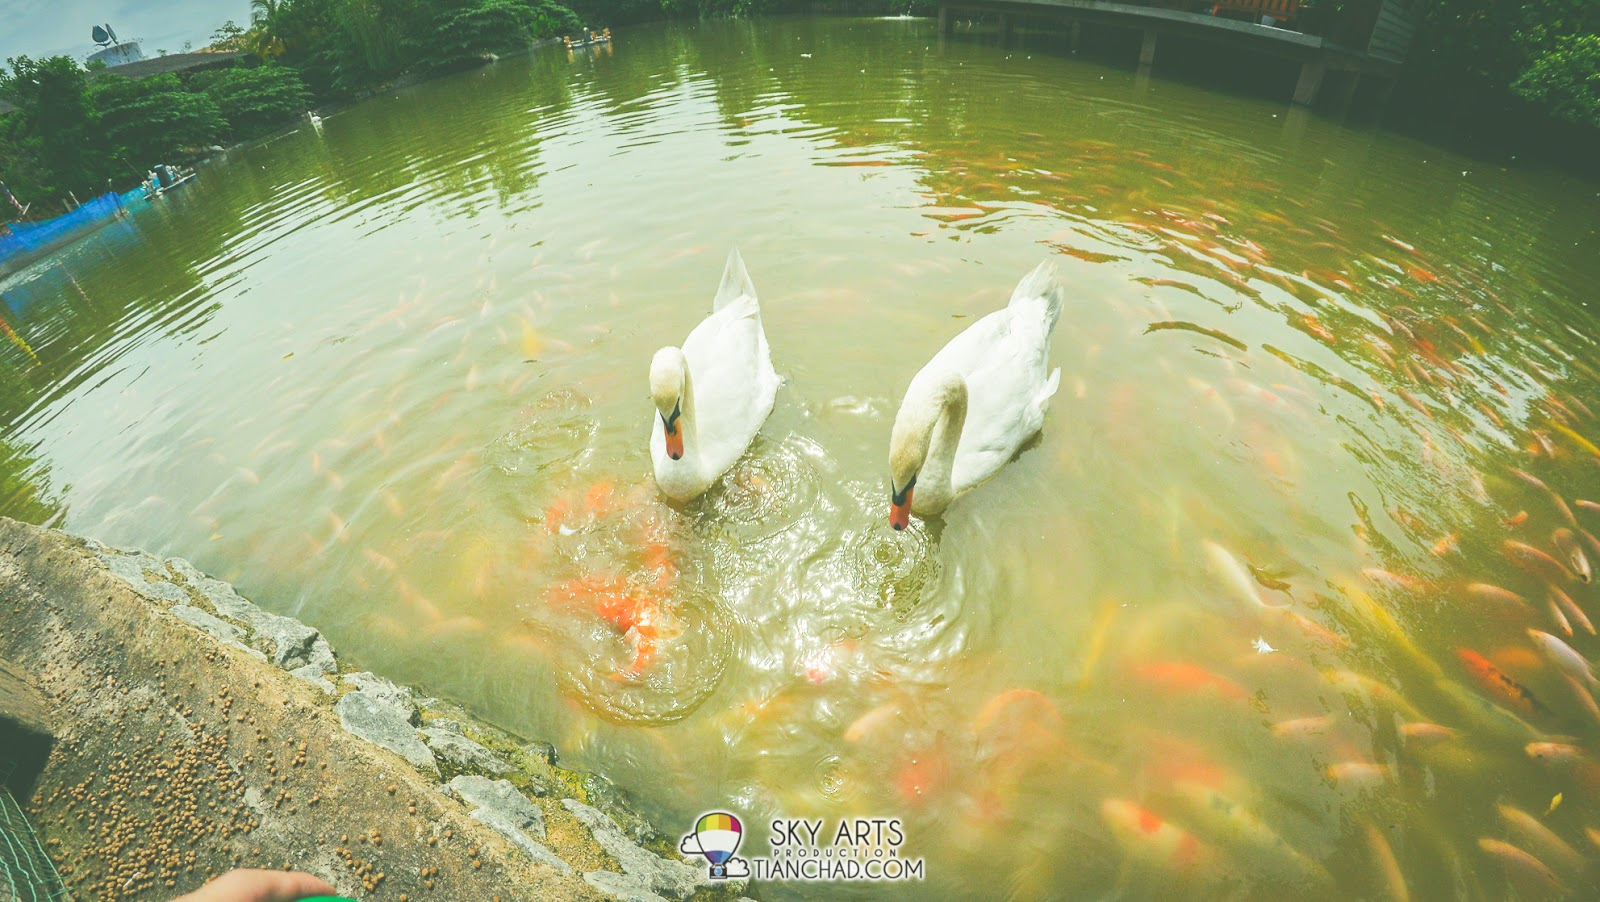 You can feed both the swans and the koi fishes in the lake